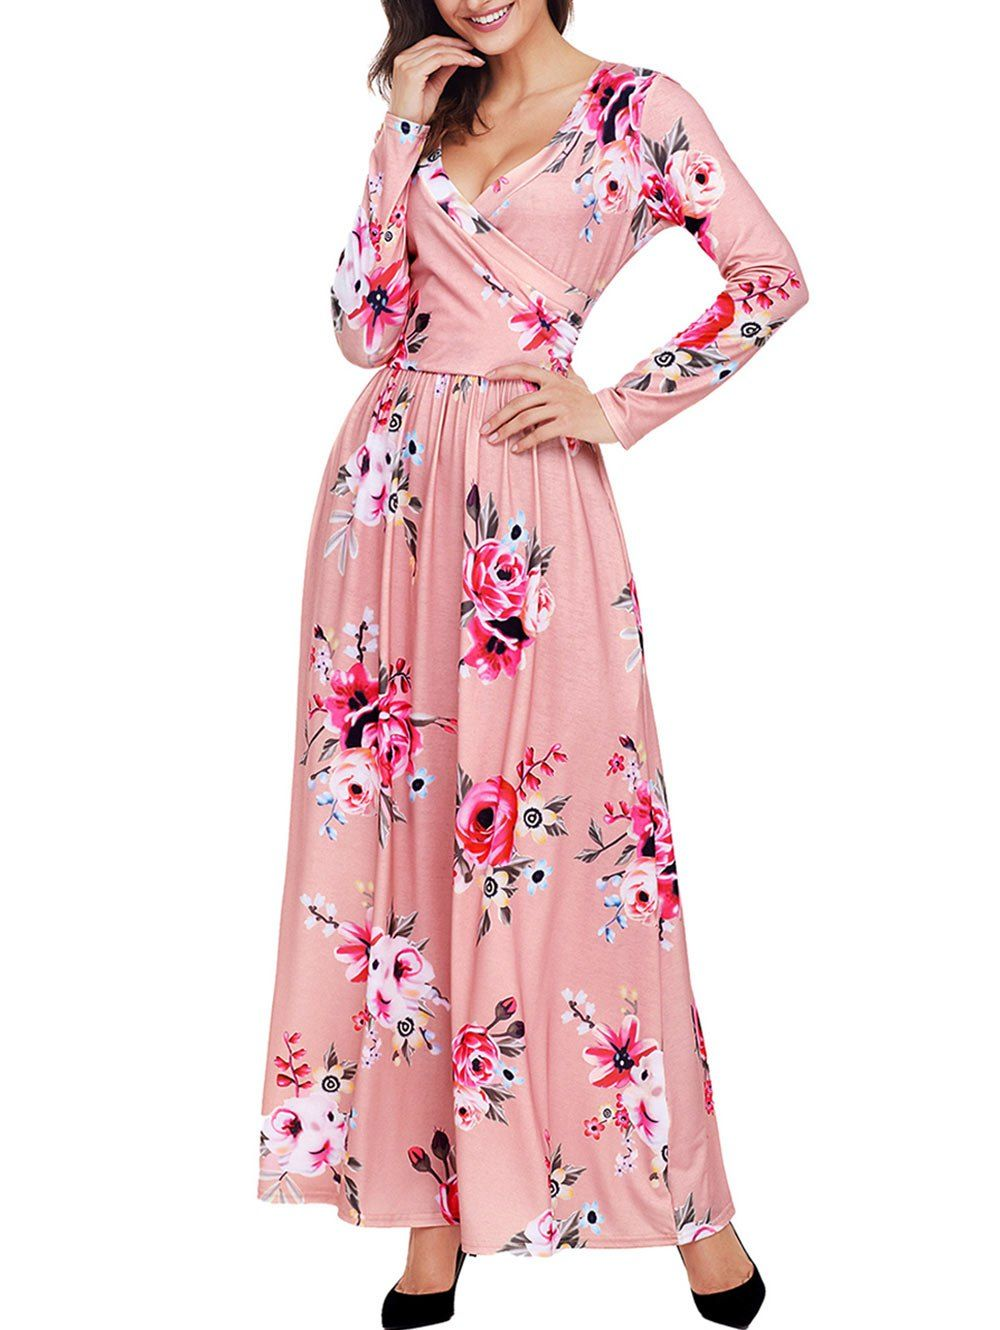 Floral Long Sleeve Surplice Neck Maxi Dress | Vestimentas y Consejos